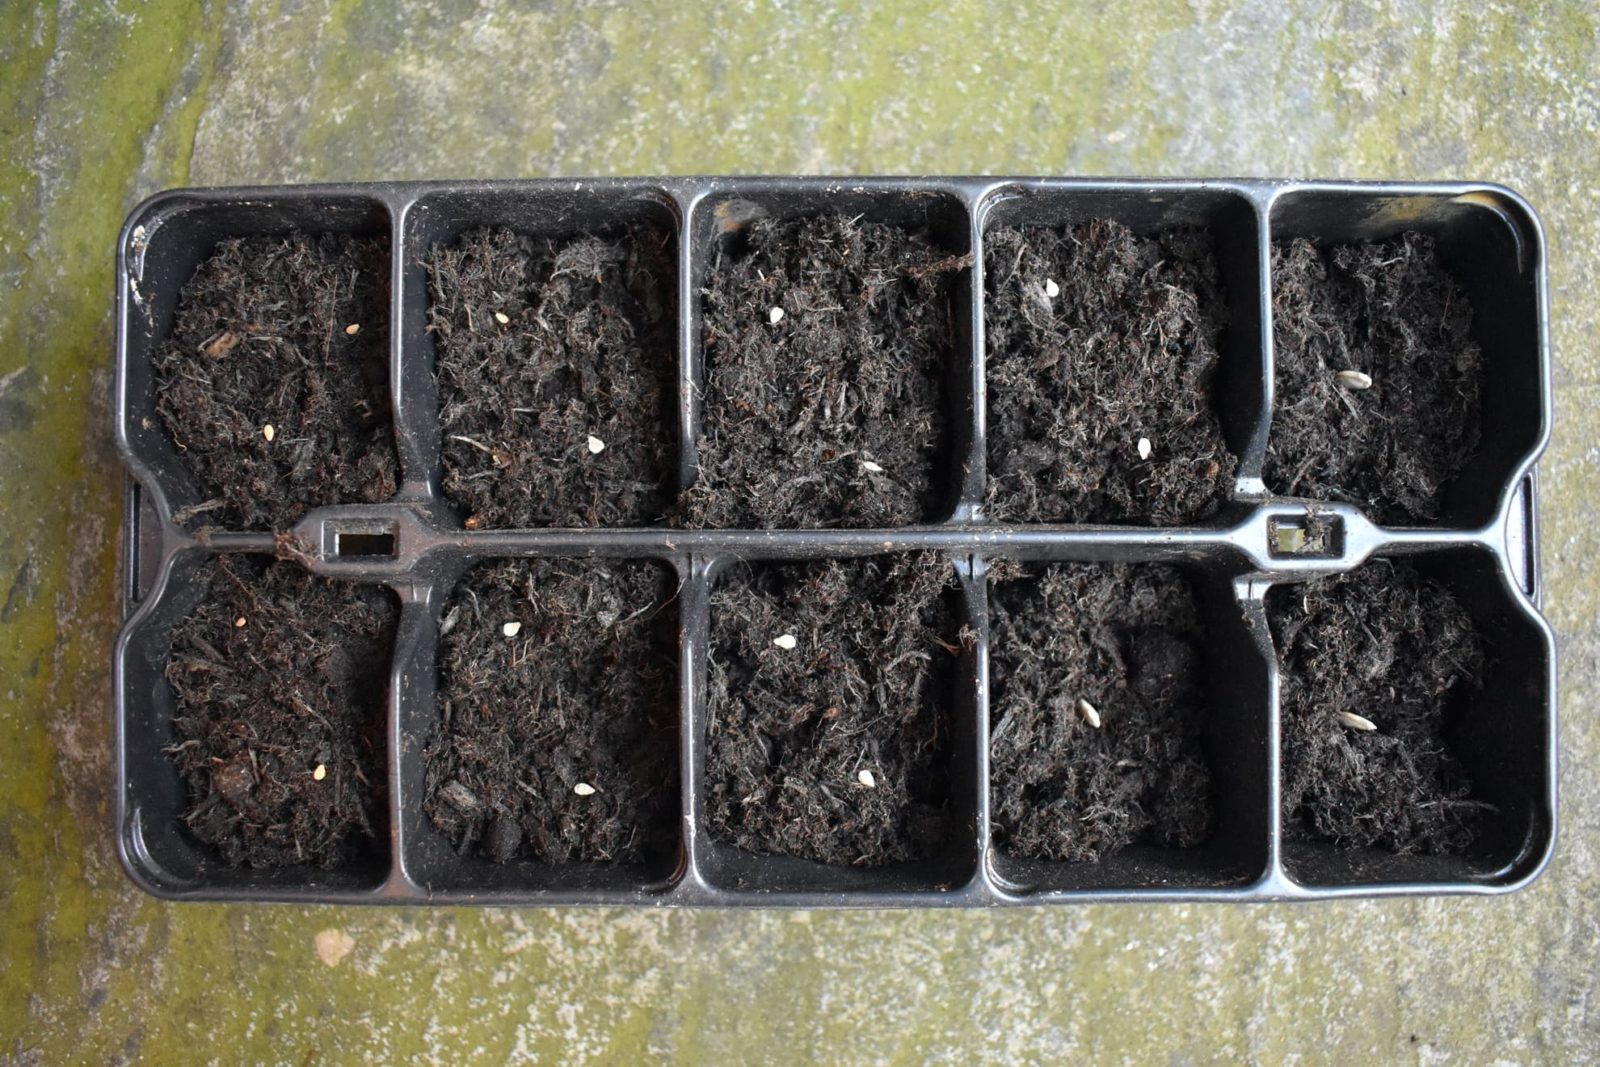 compost and seedlings in a tray